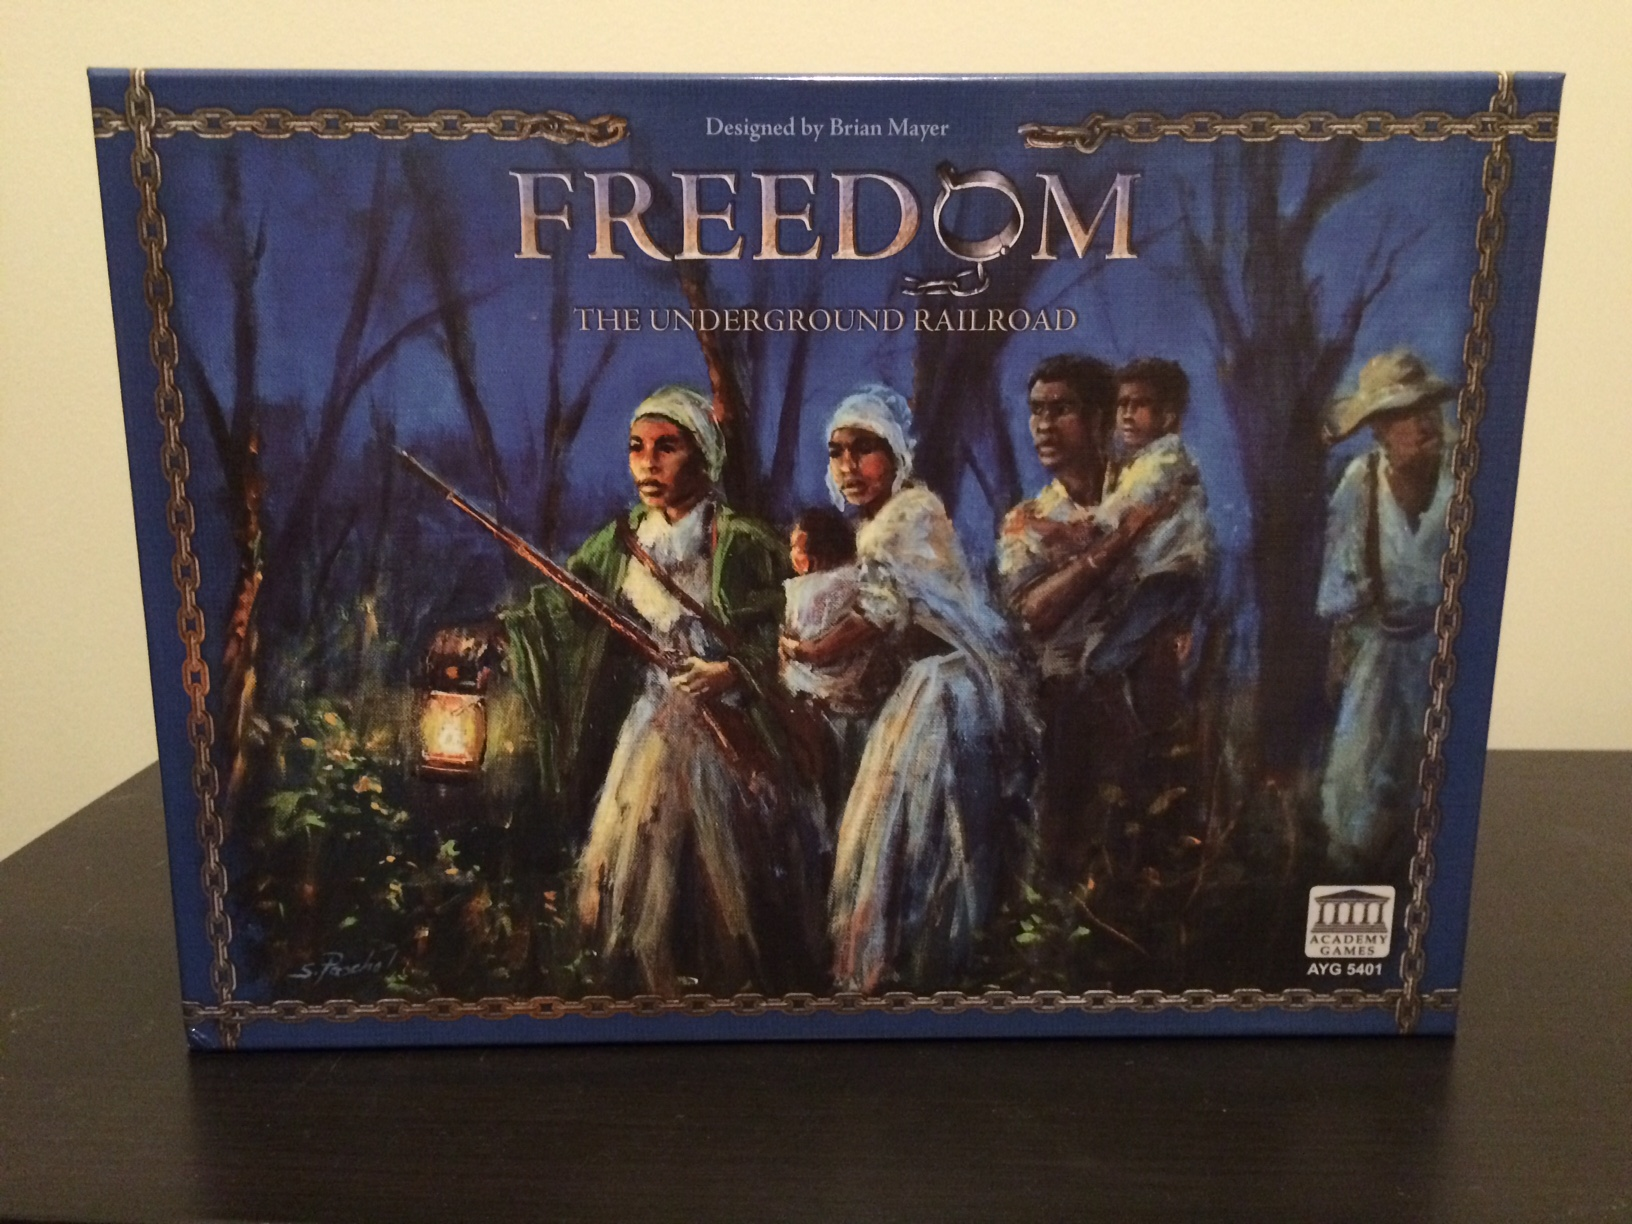 the underground railroad that leads to freedom When it opens may 4, the underground railroad heritage center in niagara   harriet tubman crossed to lead enslaved people to freedom.